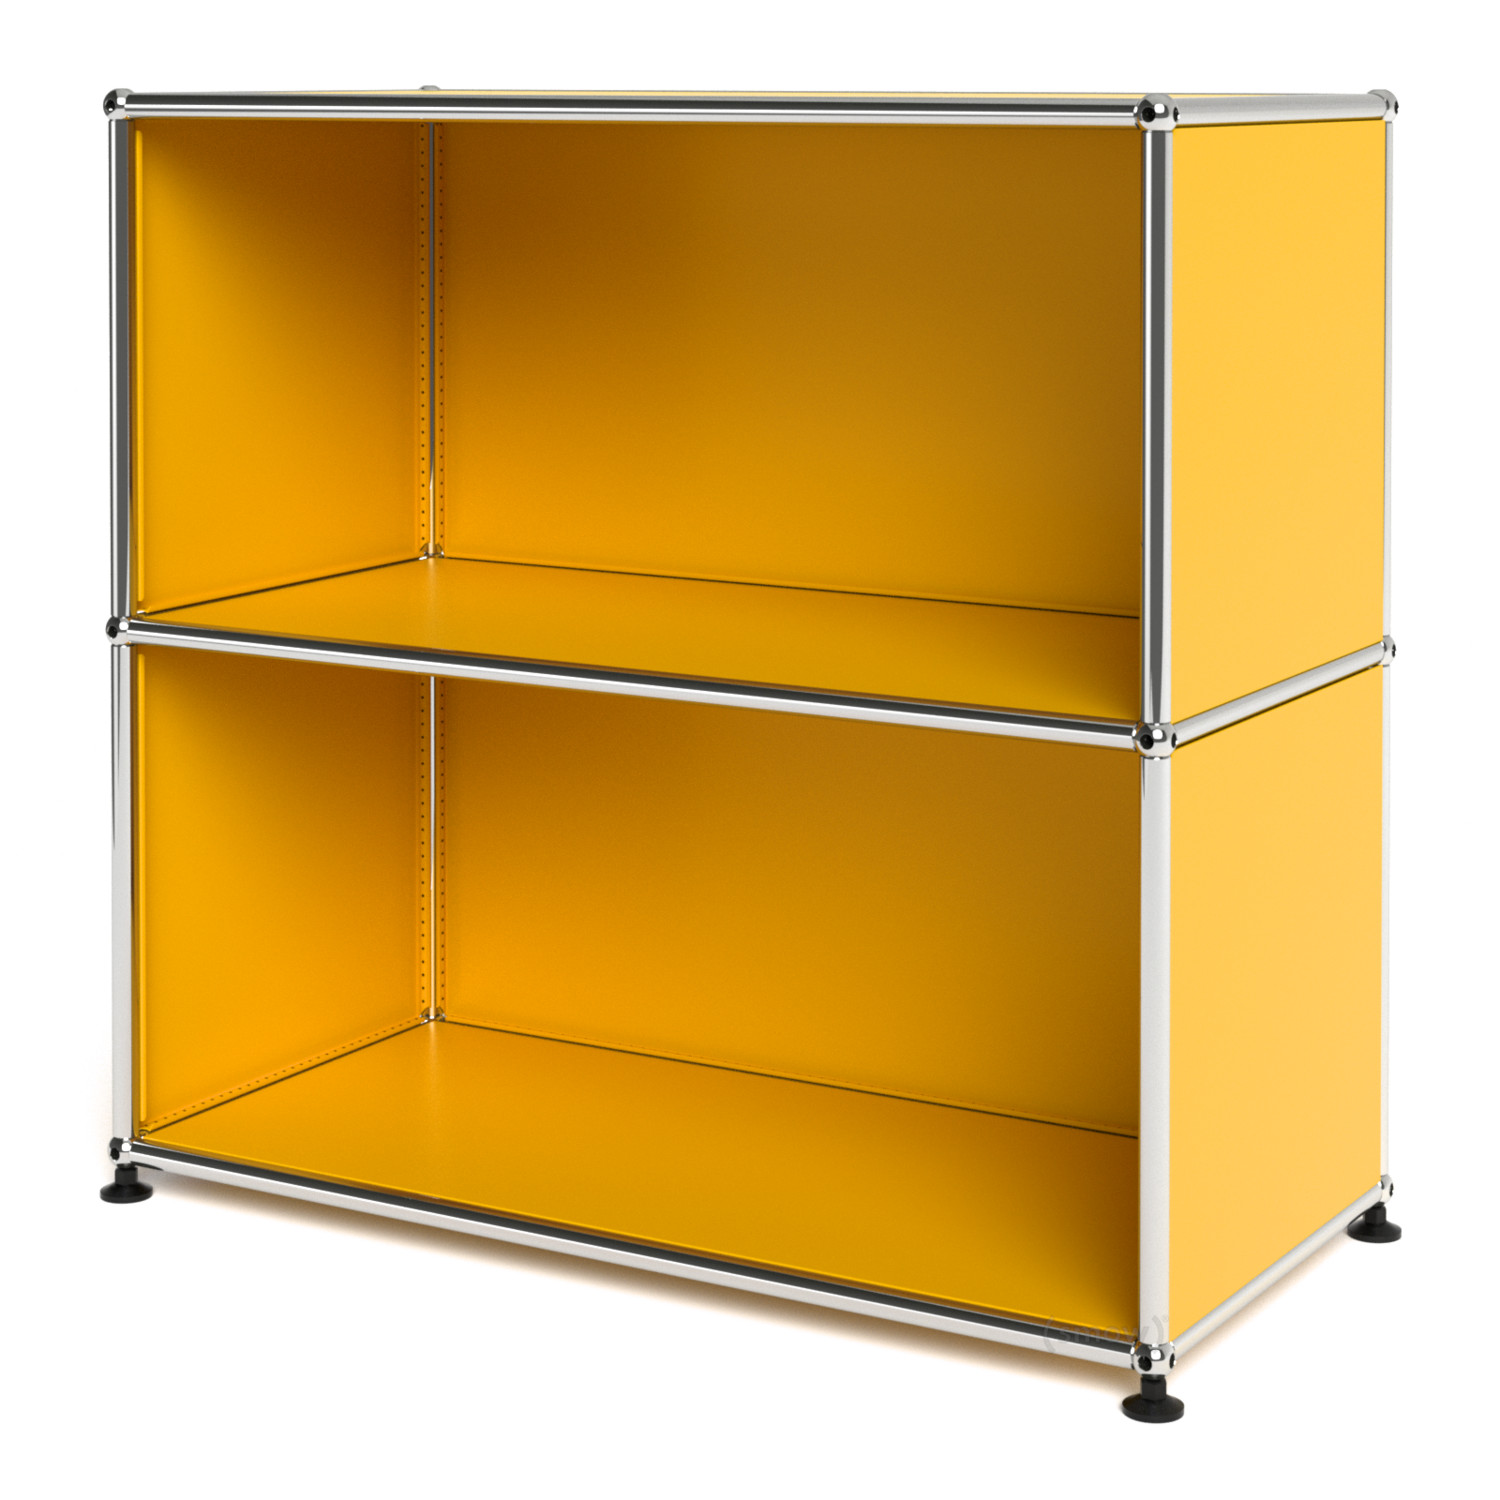 usm haller sideboard m open golden yellow ral 1004 by. Black Bedroom Furniture Sets. Home Design Ideas